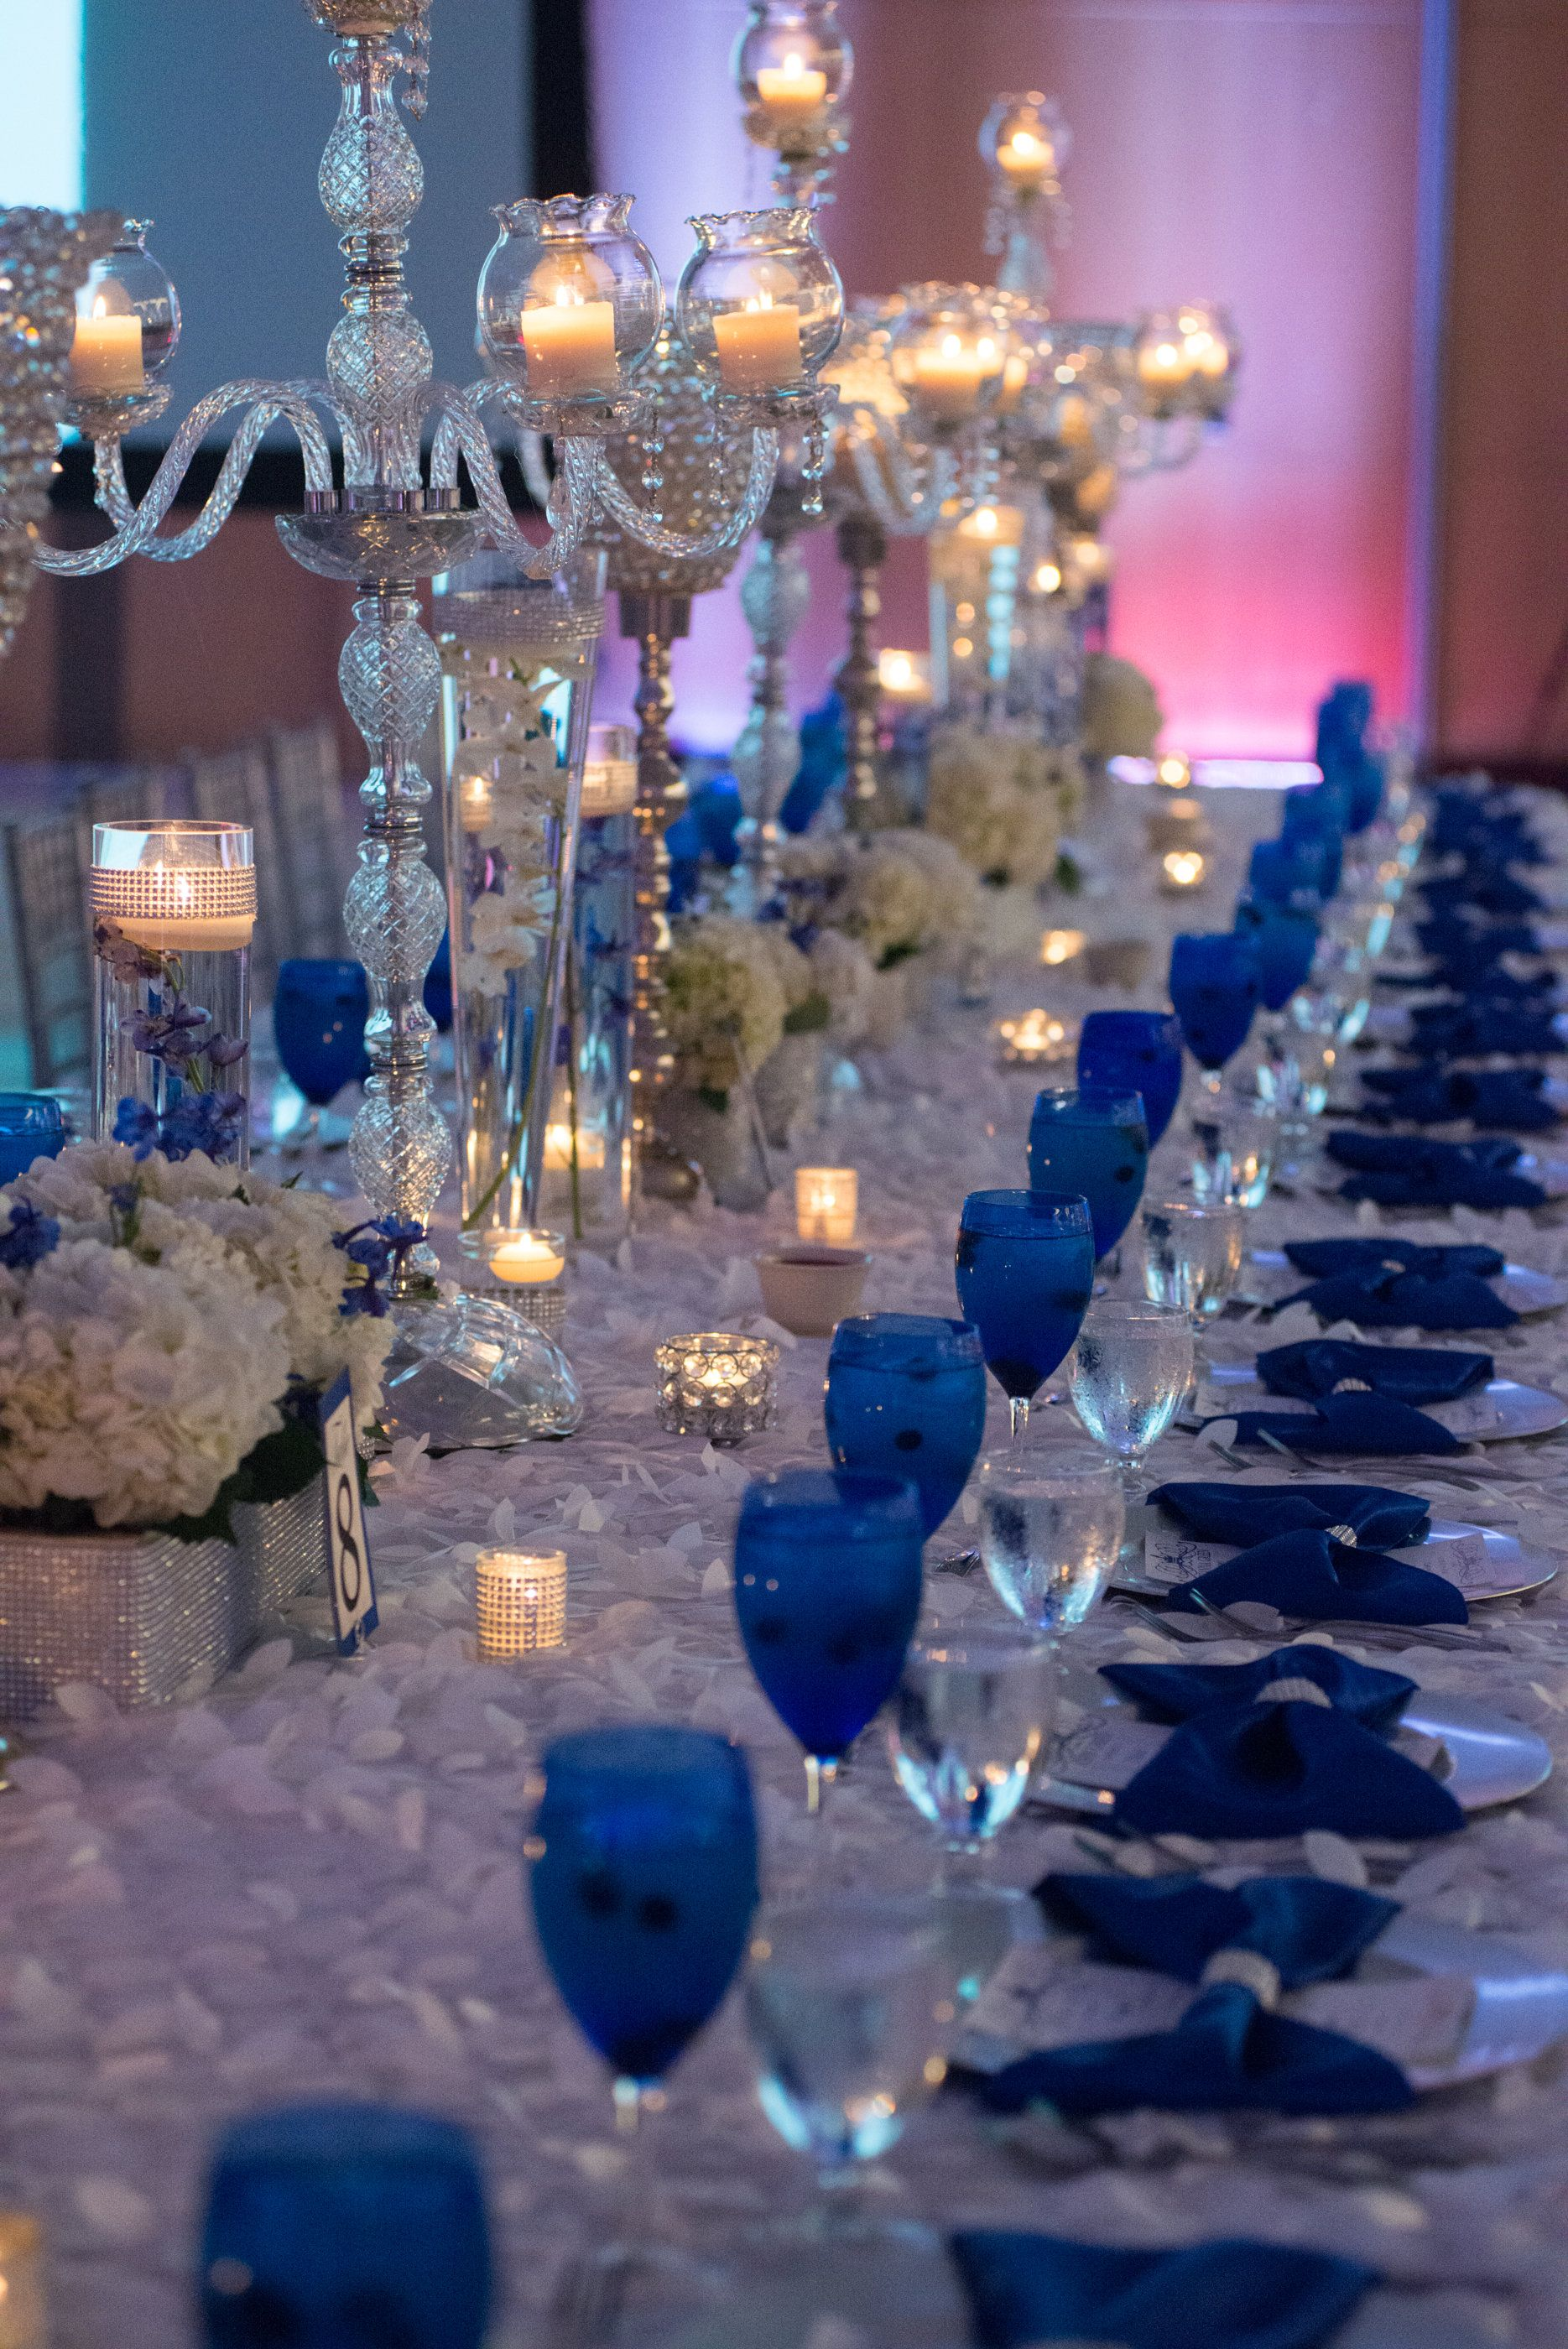 Our Royal Blue Wedding Family Styled Seating Reception Table Goblets Decor Candelabras Silver Chargers Ivory And White Petal